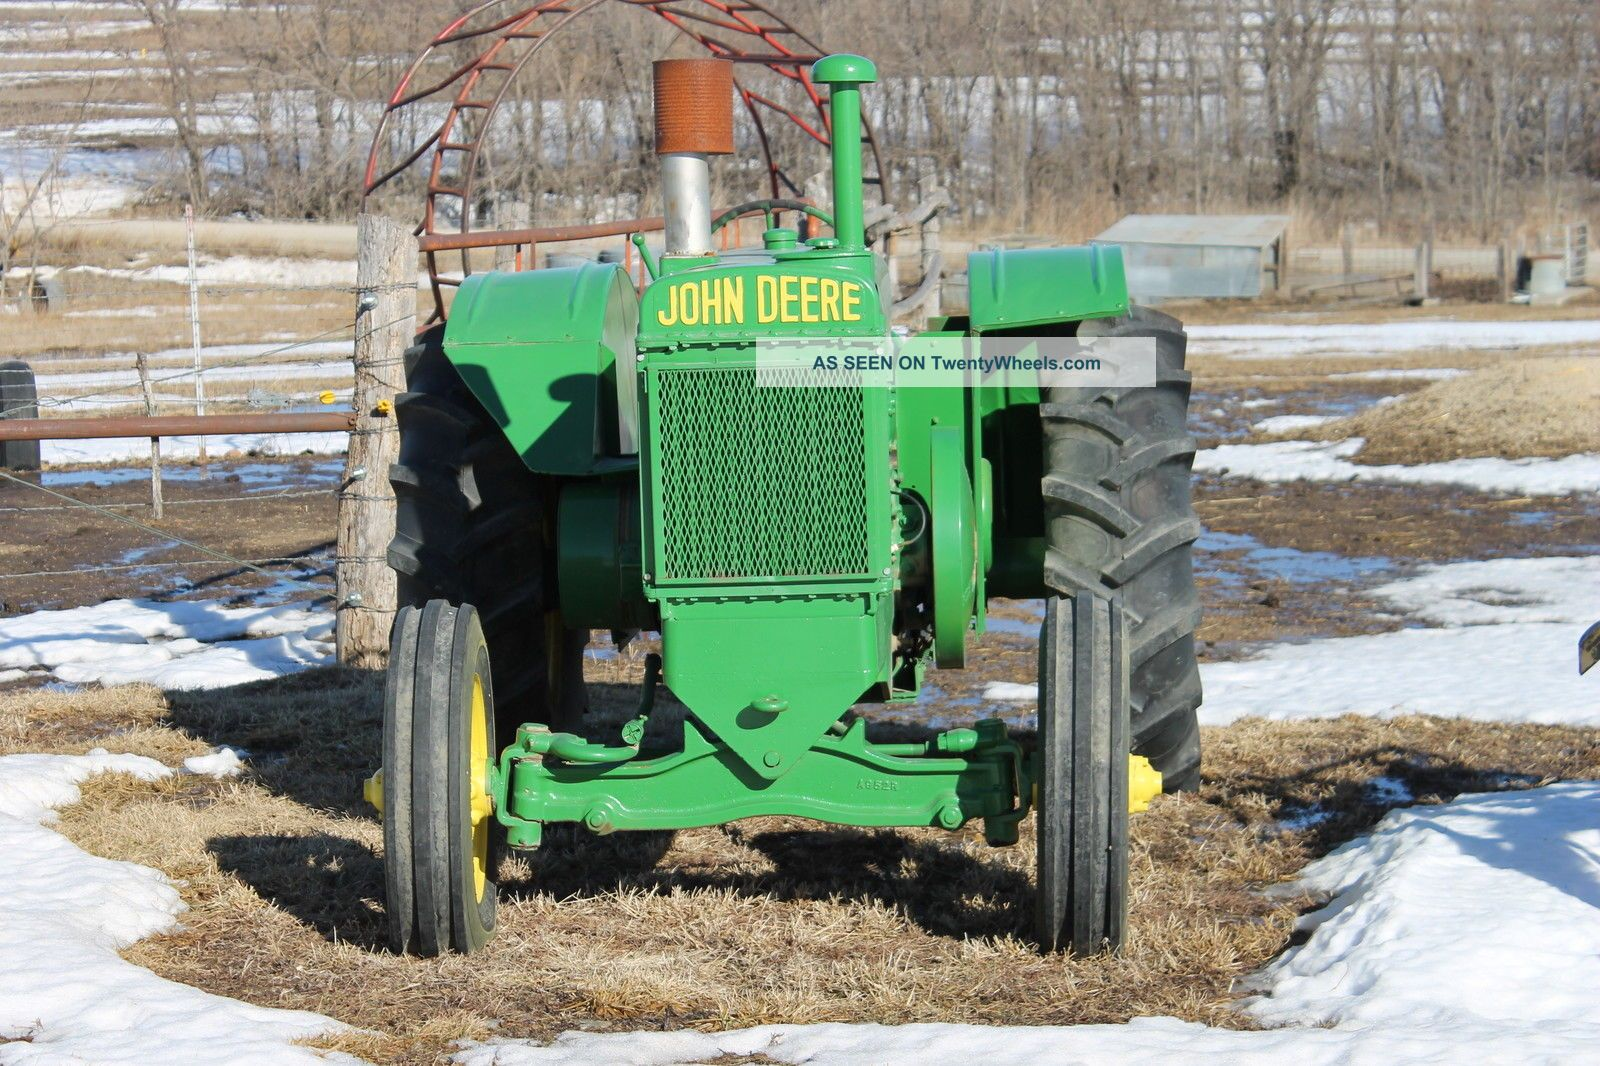 John Deere Tractor Parts, Specs and Information Antique john deere tractor photos